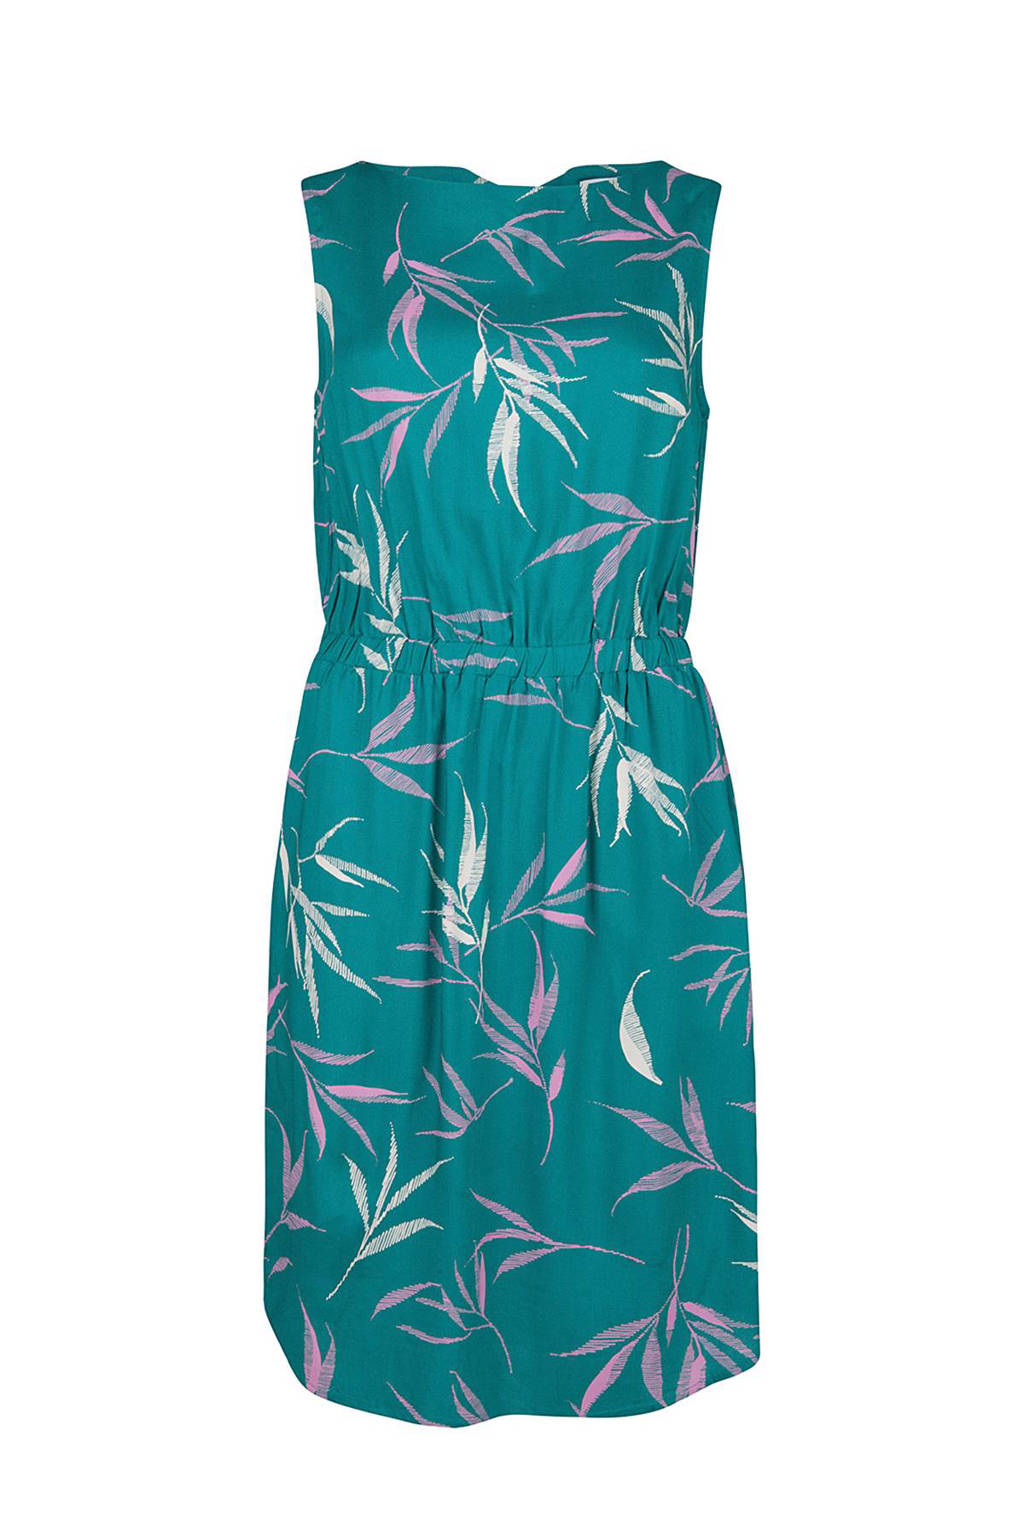 WE Fashion jurk met all-over print turquoise, Turquoise